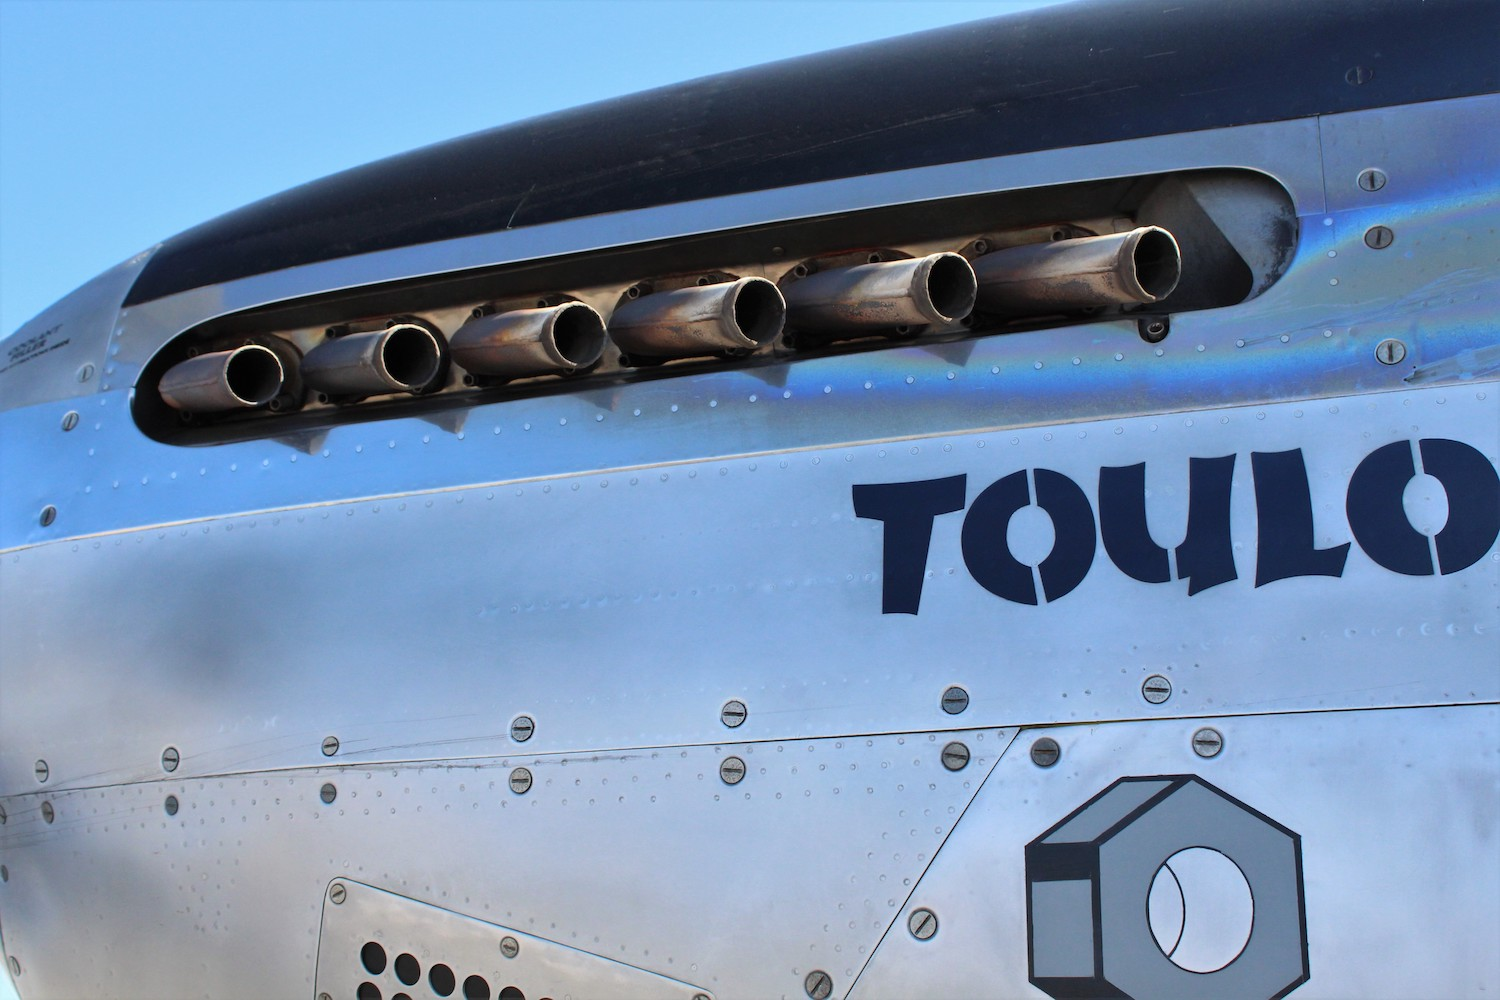 Sairscapemag20181112telltheskytorejoice S. P51d3exhaust. Wiring. Hobart Wiring Diagram C46a At Scoala.co